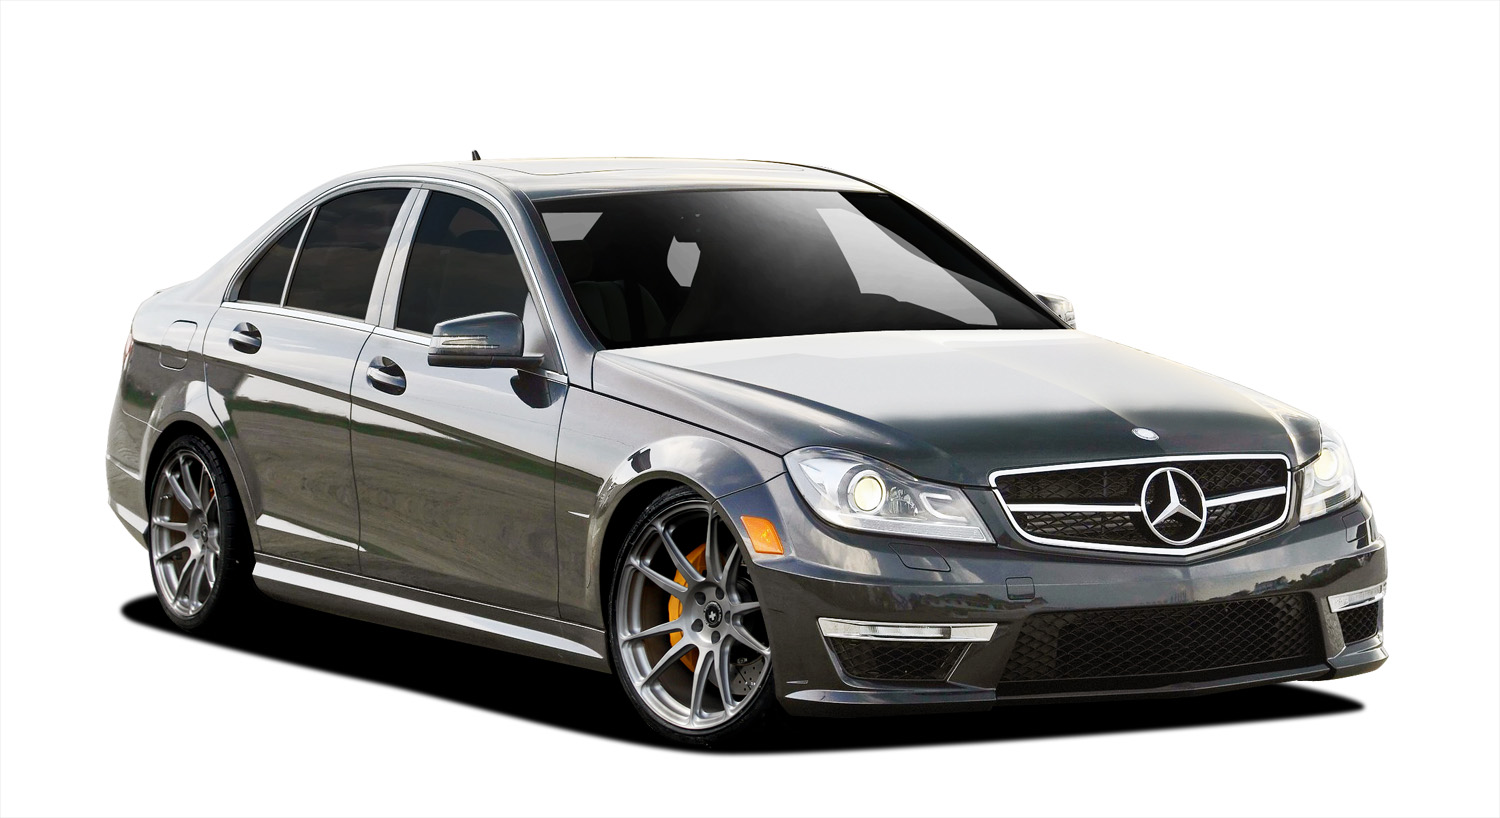 Polypropylene Body Kit Bodykit for 2014 Mercedes C Class ALL - Mercedes C Class C250 W204 Vaero C63 Look Conversion Kit ( without PDC ) - 9 Piece - In